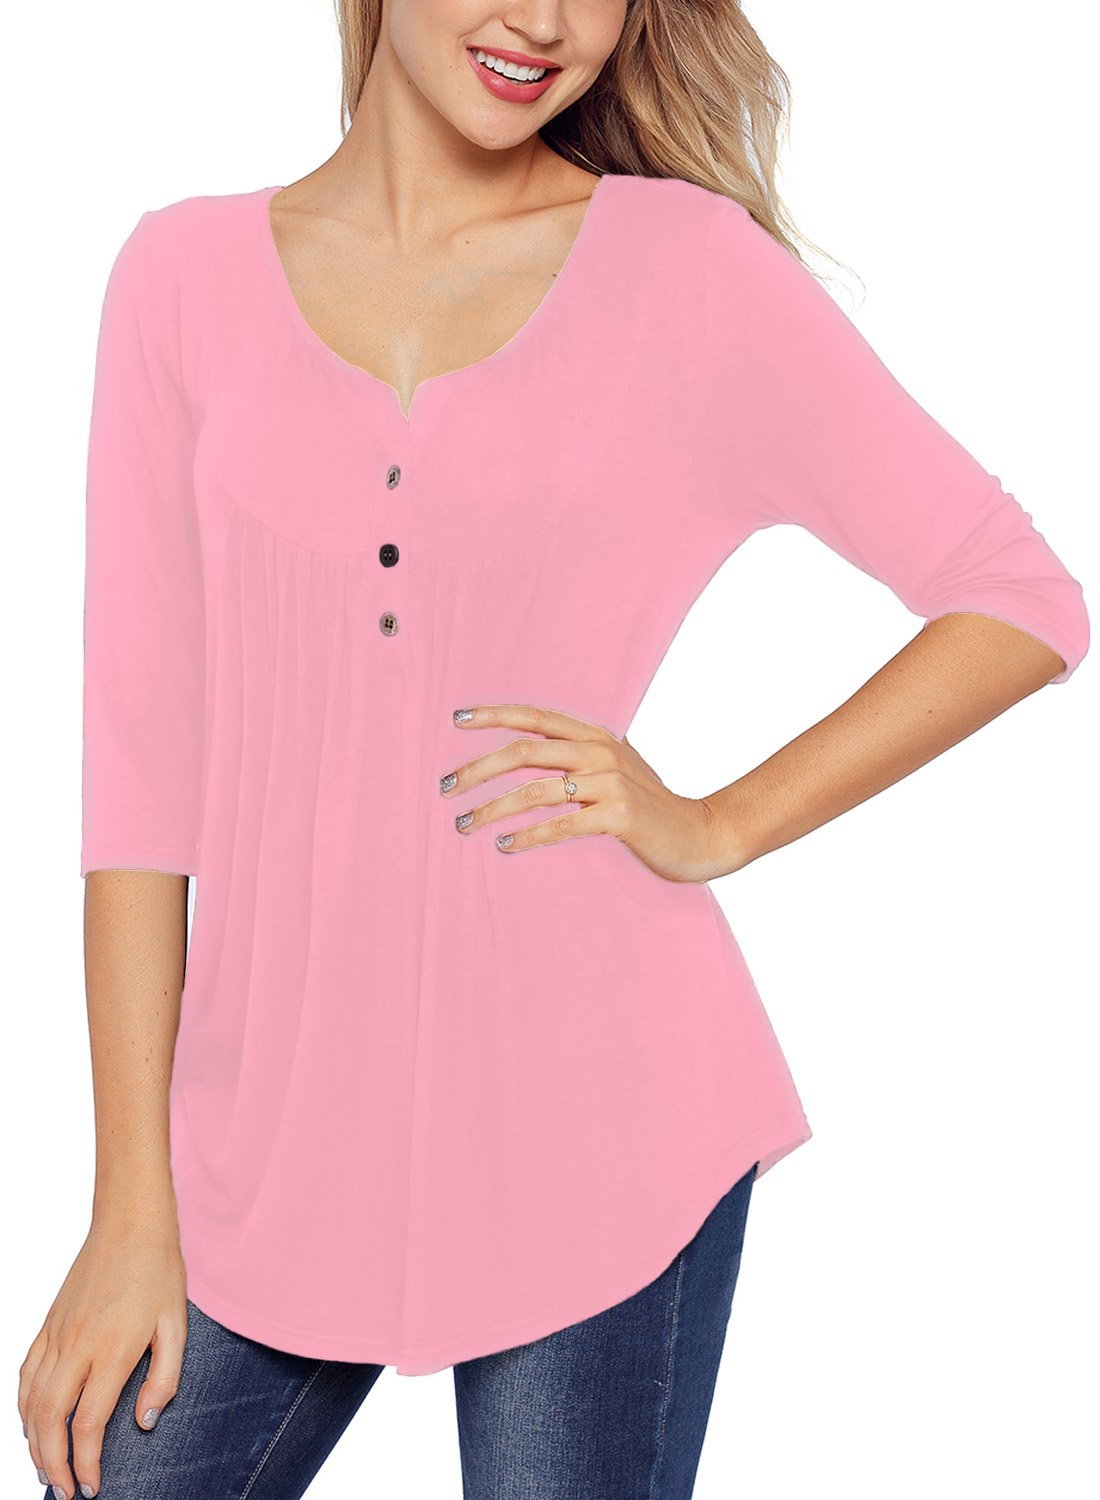 BLENCOT Women's Casual 3/4 Sleeve Button up Flare Tunic T-Shirt Pleated Solid Swing Blouse Tops-Pink Large